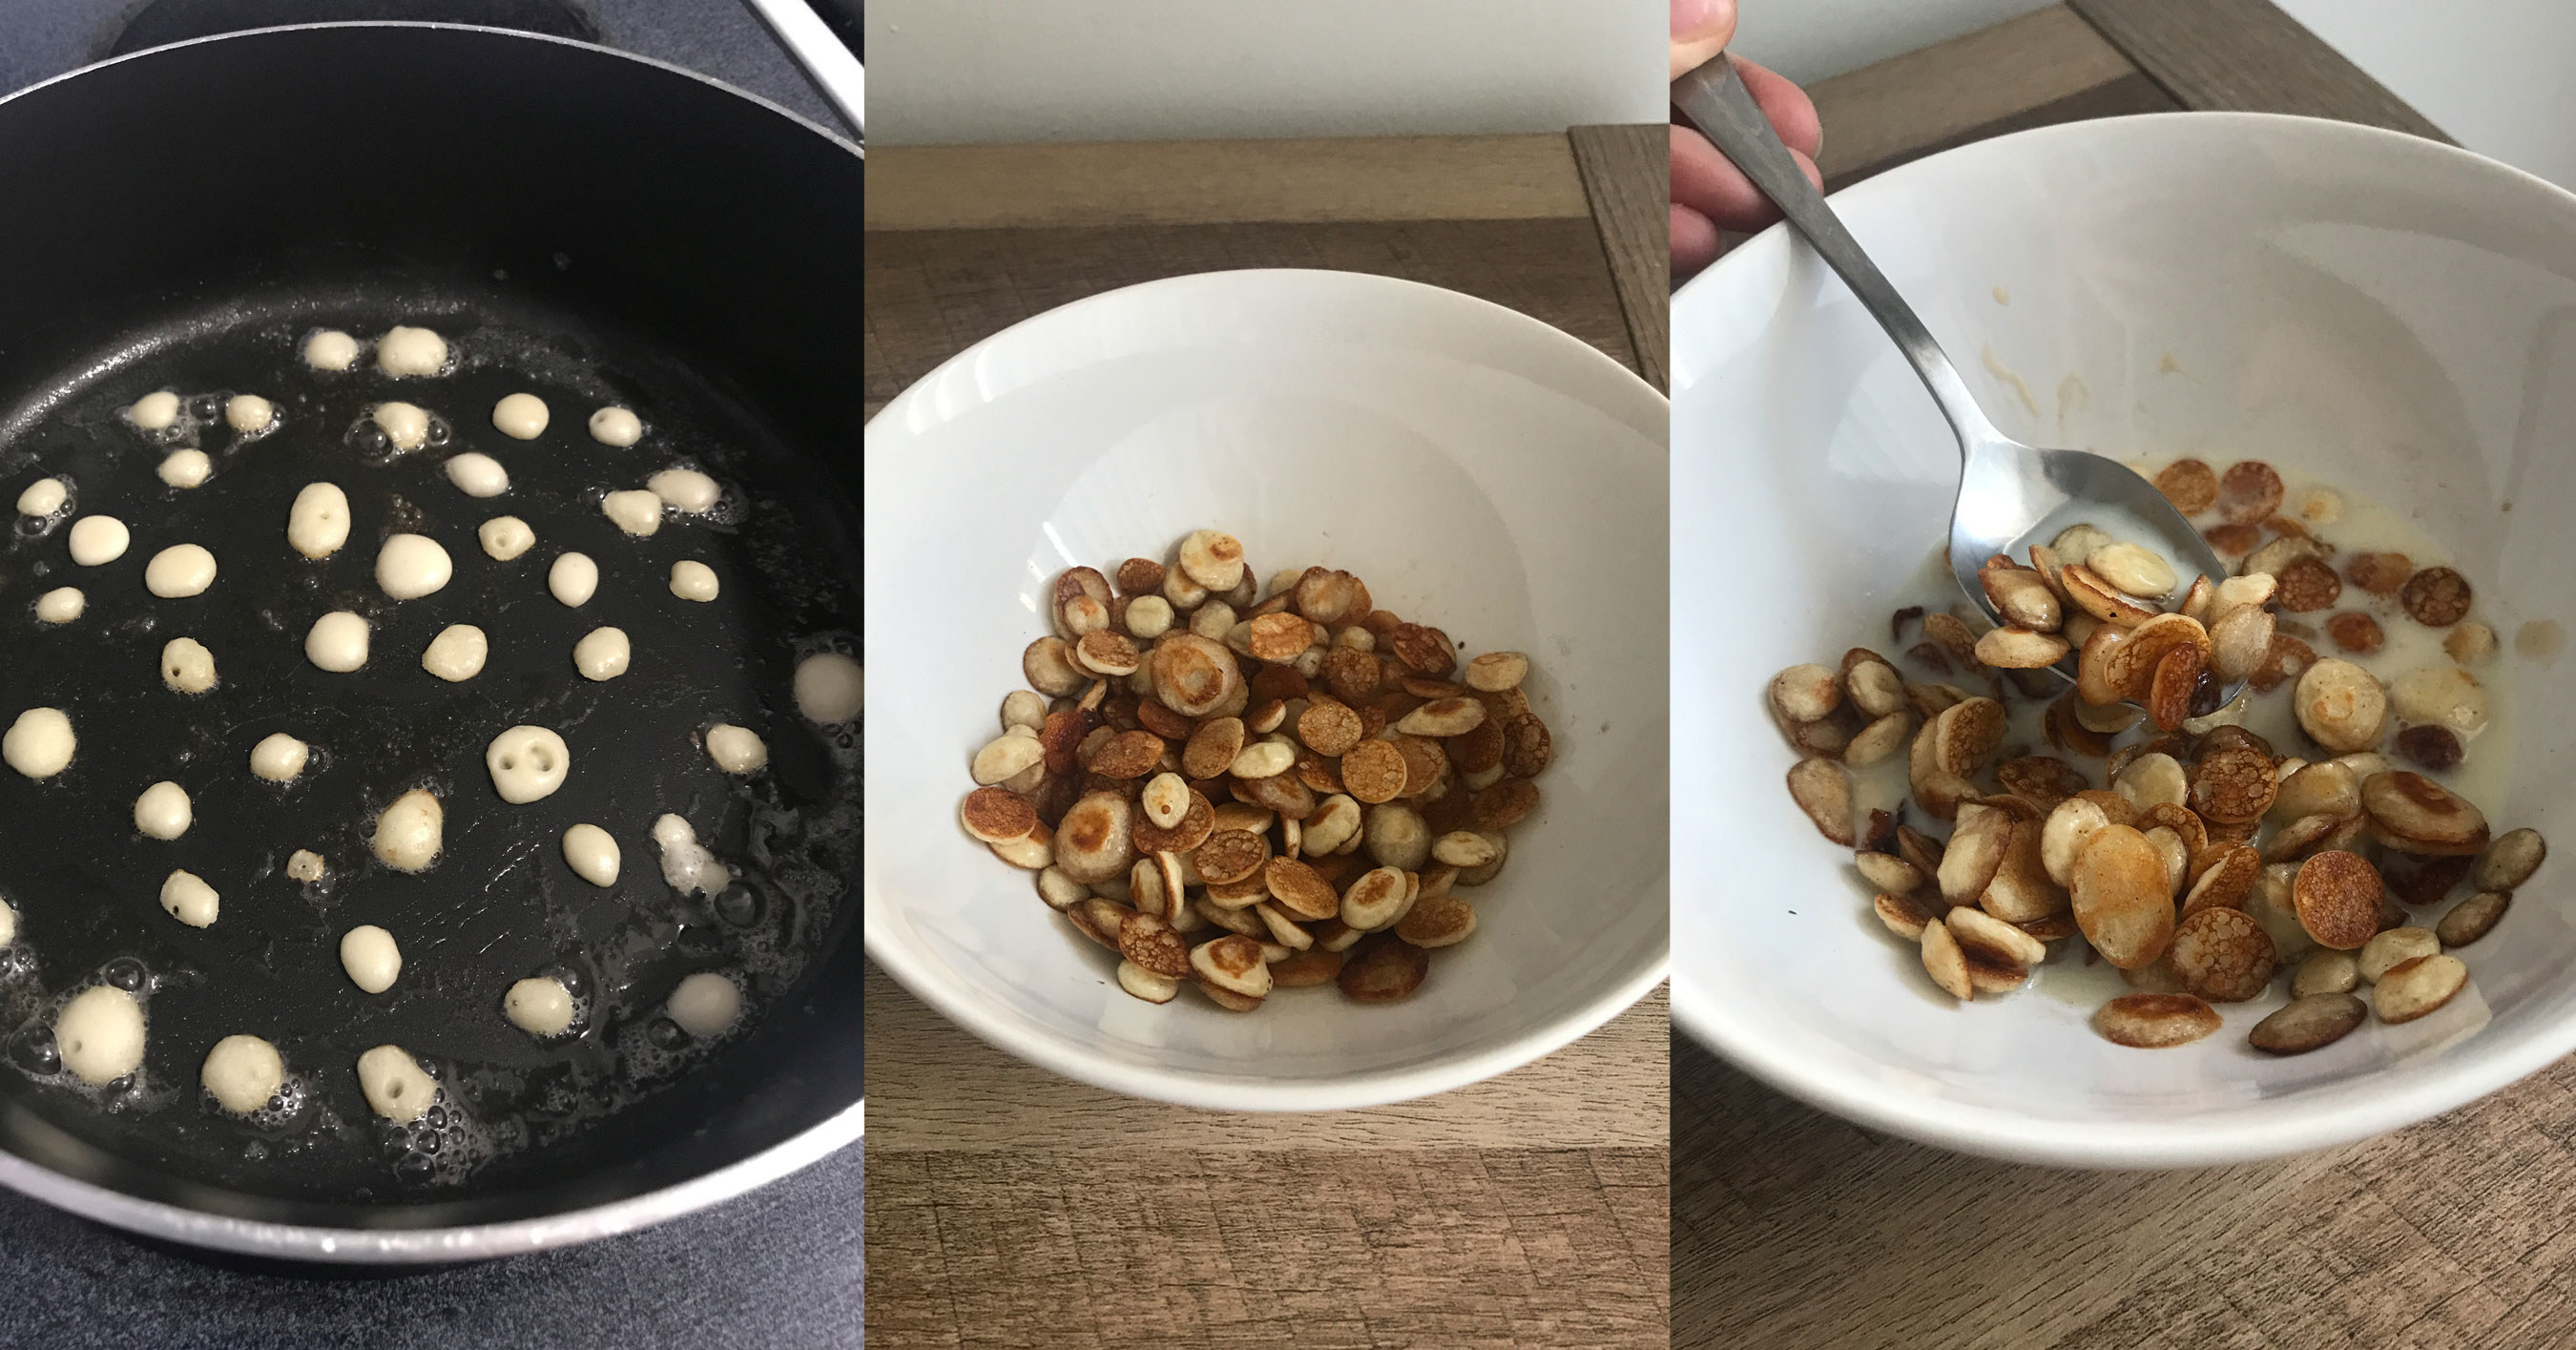 Pancake cereal the size of a dime inside a cereal bowl